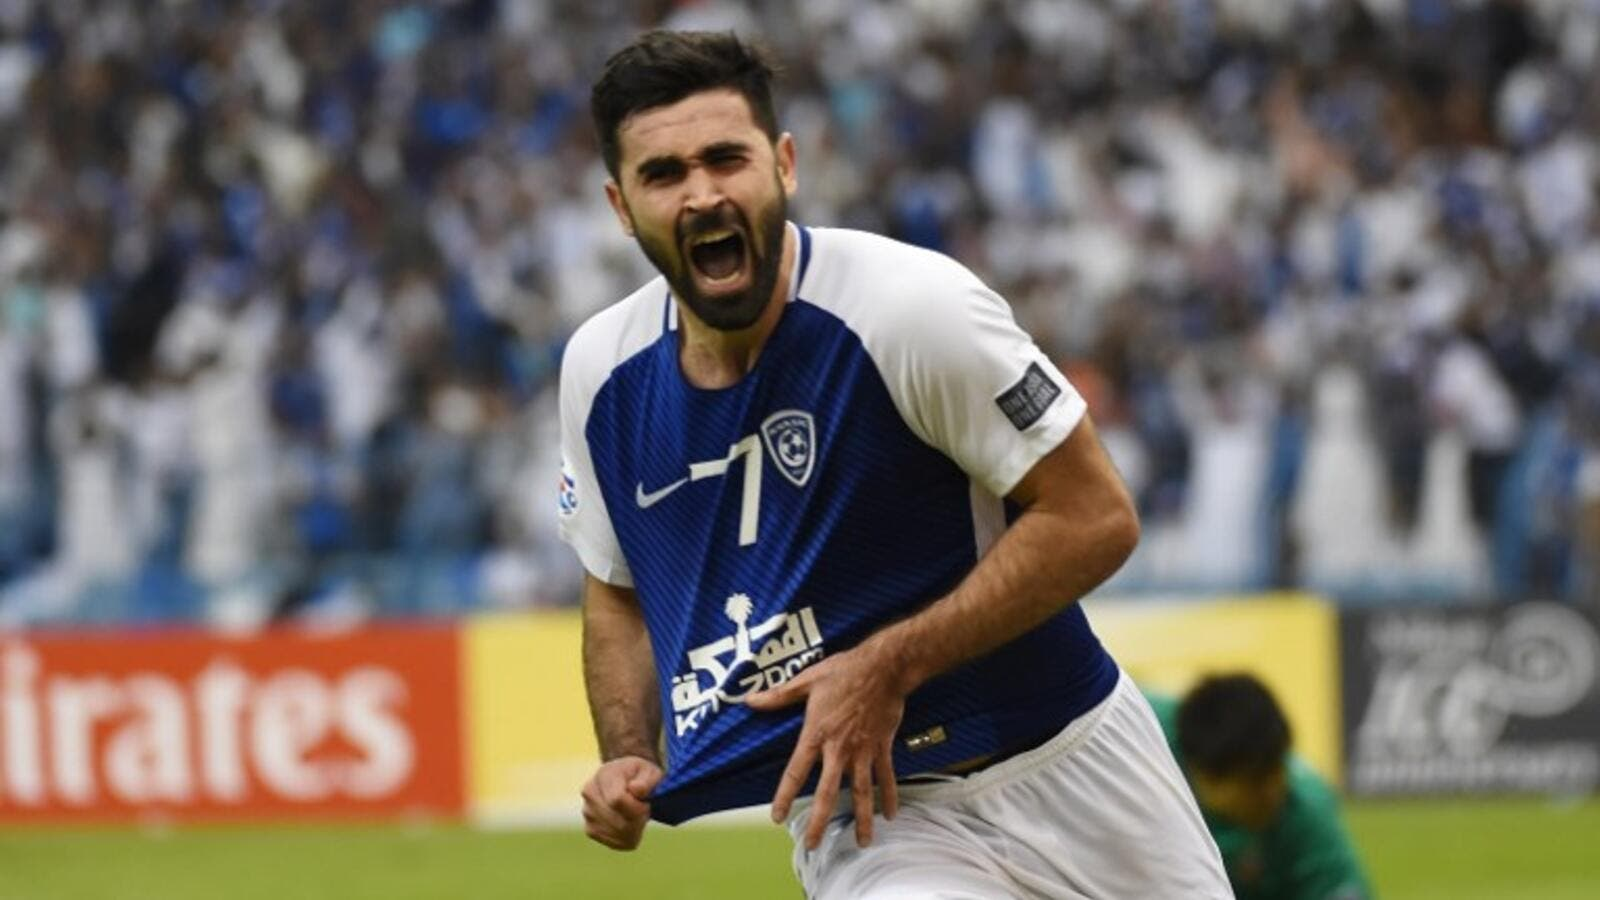 Al-Hilal's Omar Khrbin celebrates after scoring a goal during the Asian Champions League final football match between Saudi Arabia's Al-Hilal and Japan's Urawa Reds on November 18, 2017, at King Fahd Stadium in the capital Riyadh.